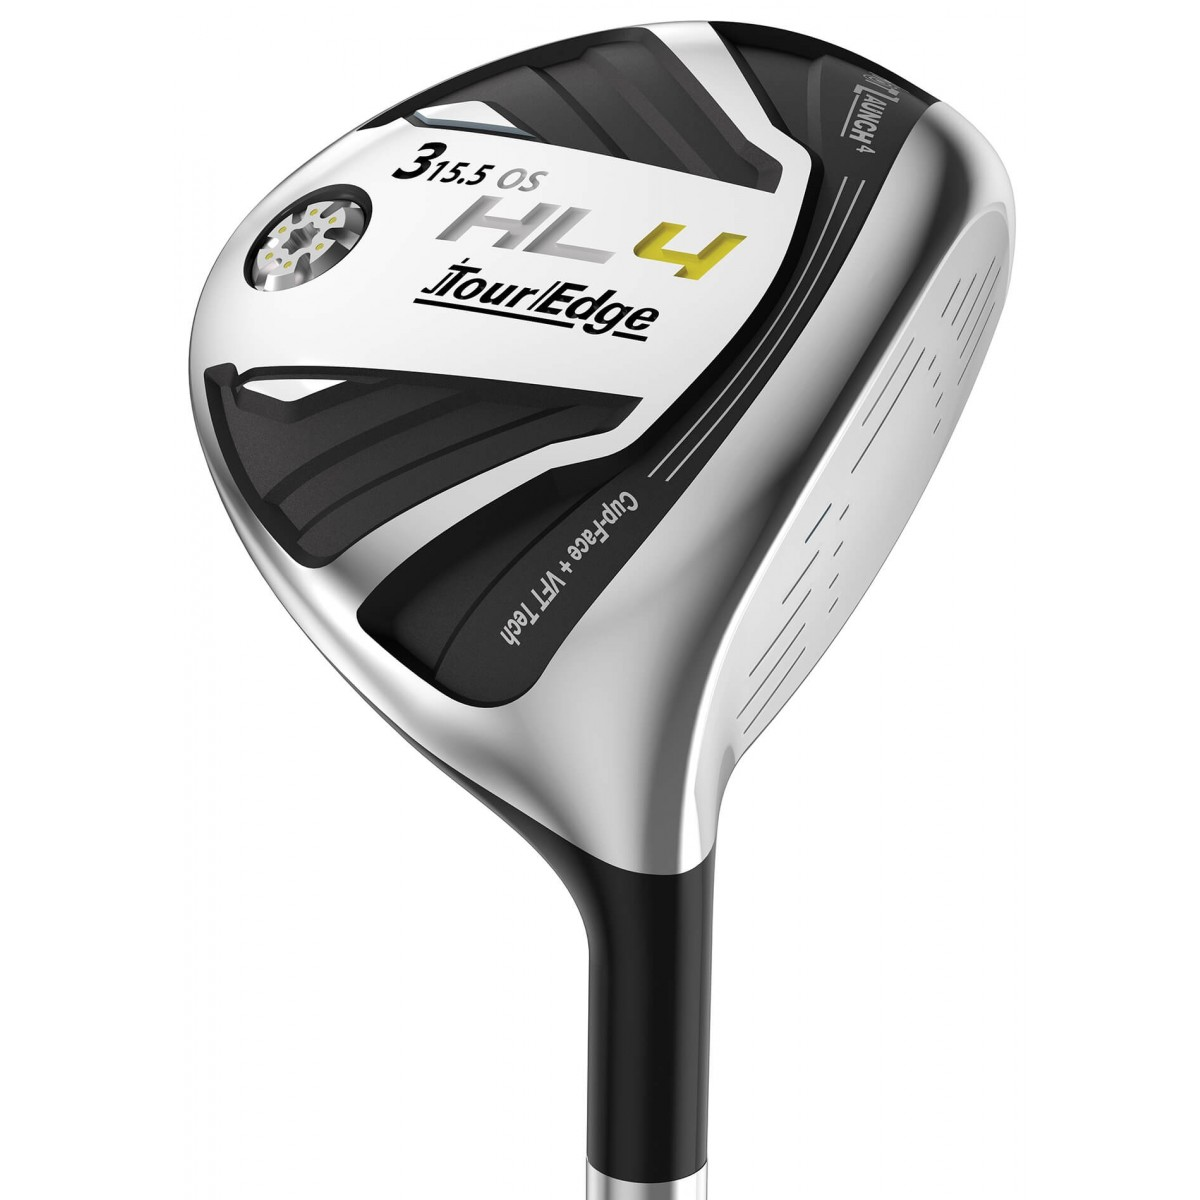 Tour Edge Men's Hot Launch 4 Offset Fairway Woods